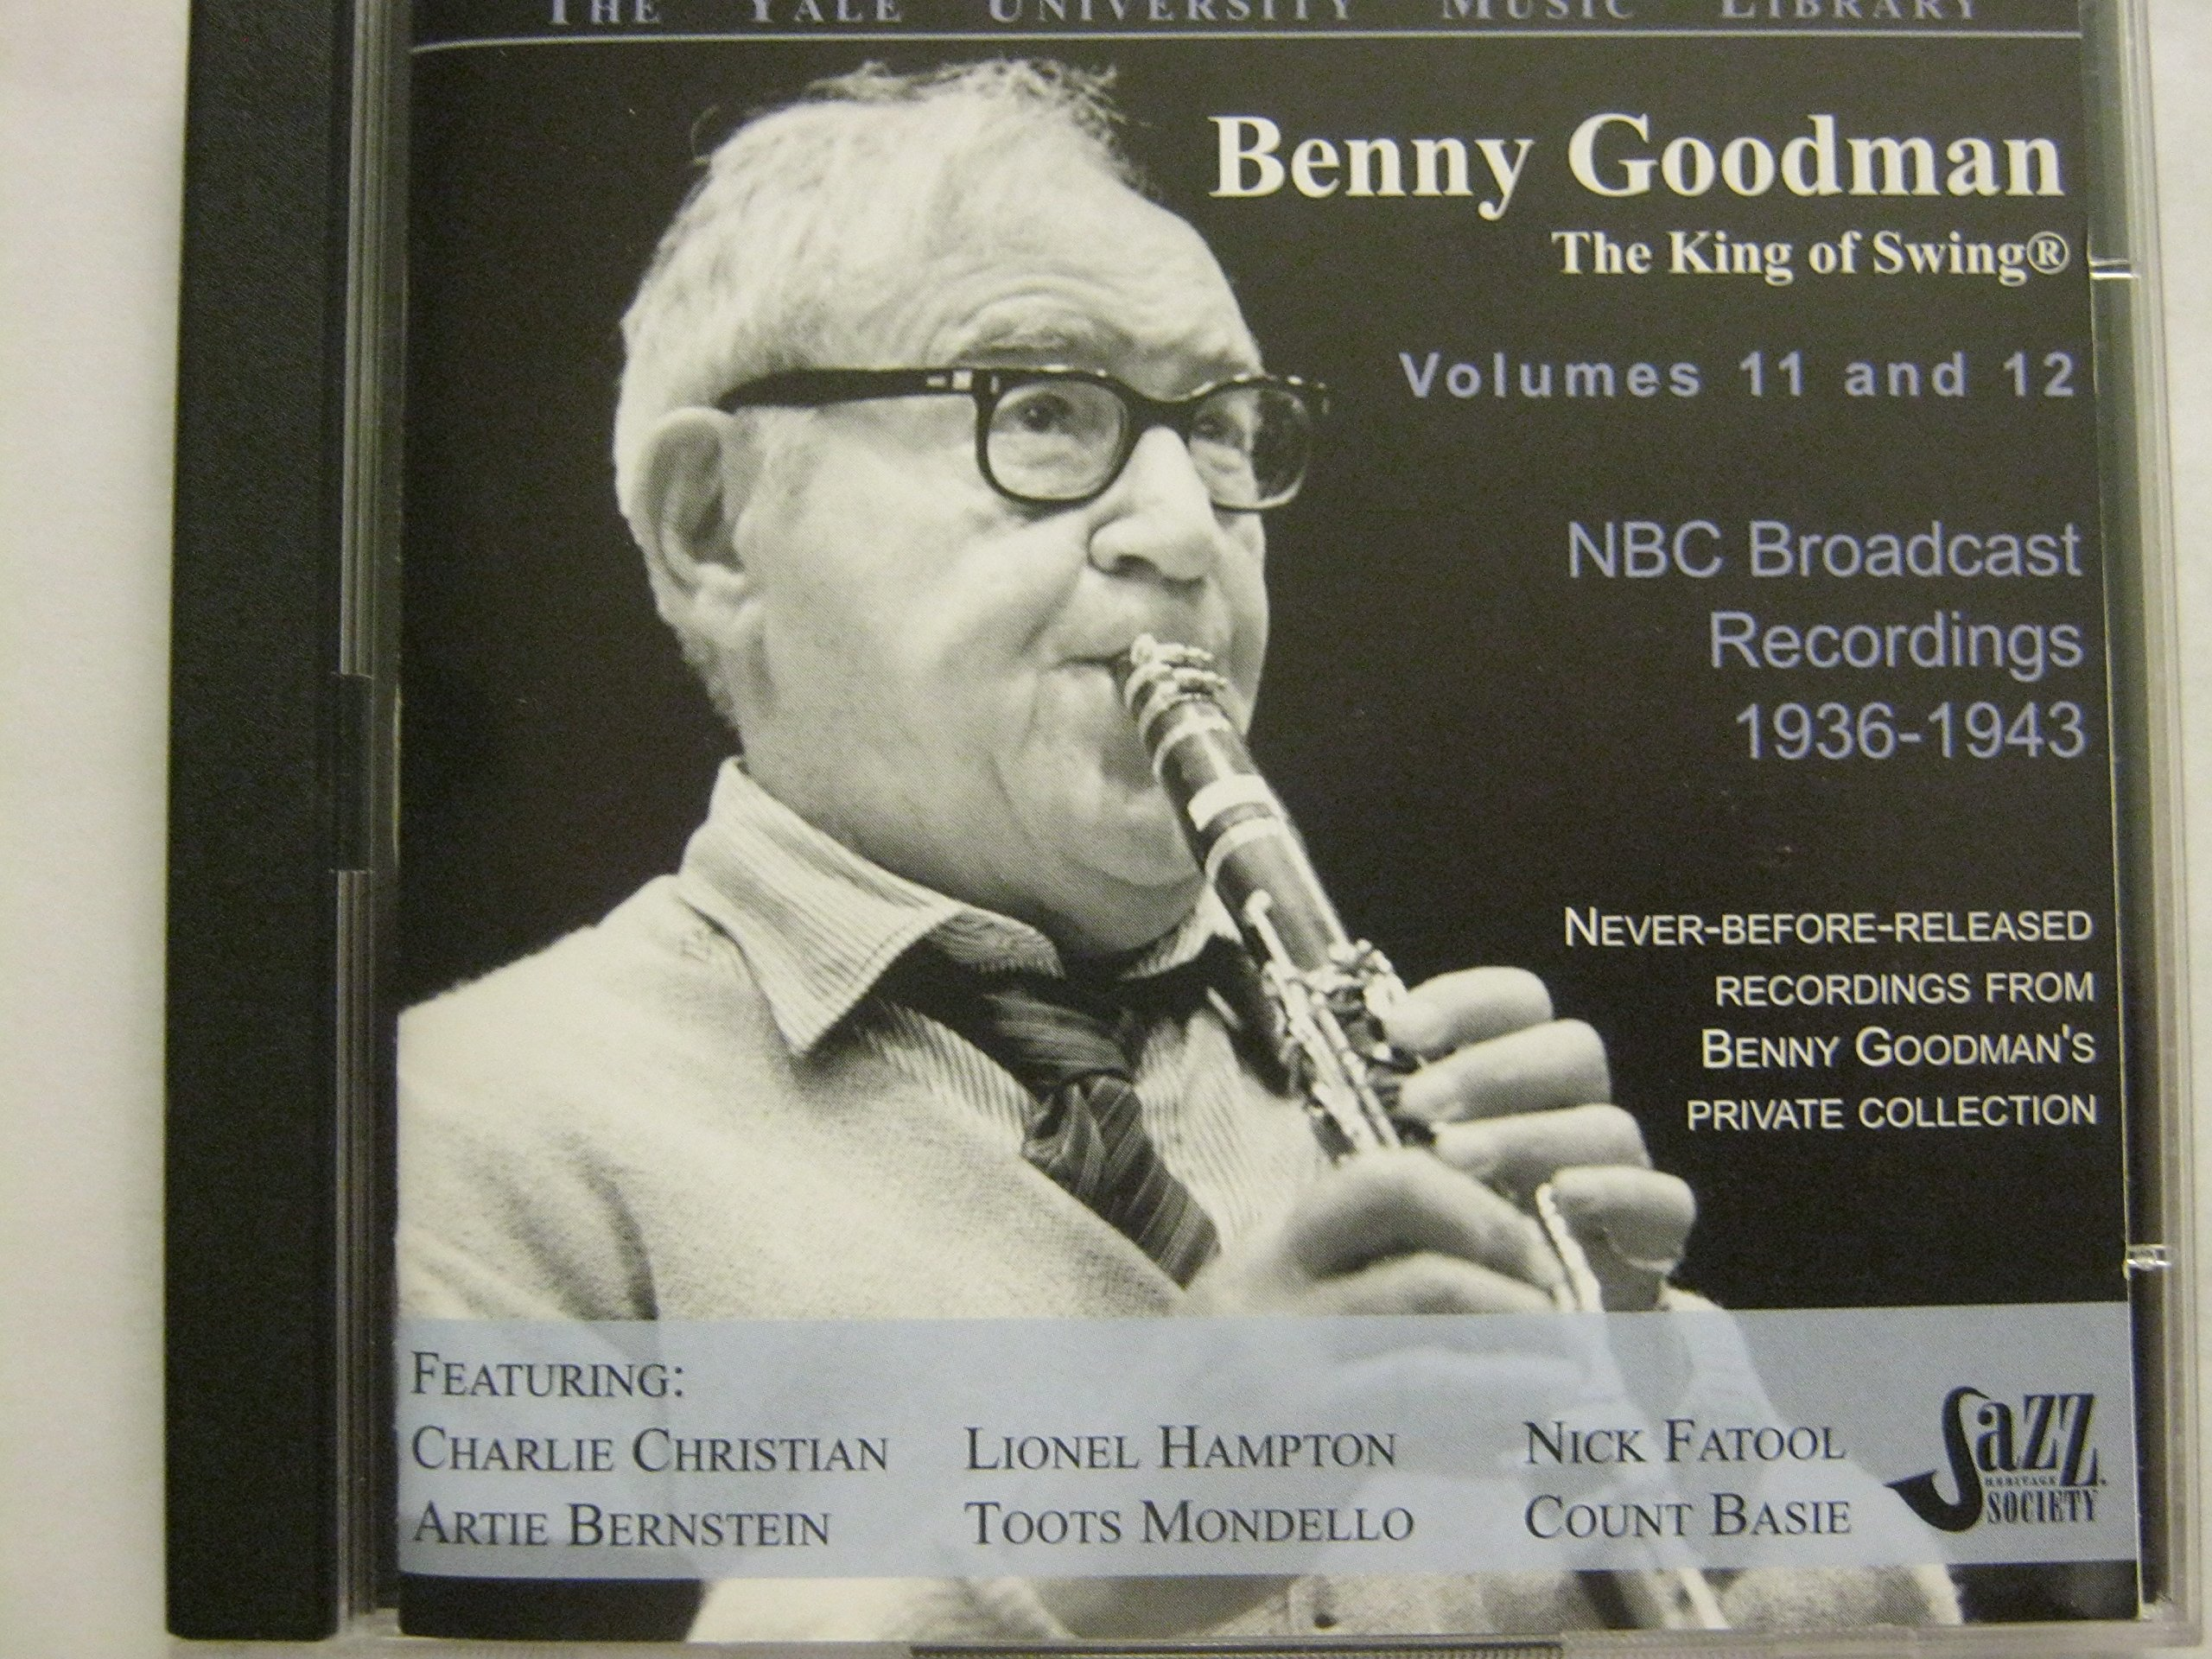 BENNY GOODMAN YALE ARCHIVES VOLUMES 11 AND 12 : NBC Broadcast Recordings 1936-1943 by Jazz Heritage Society